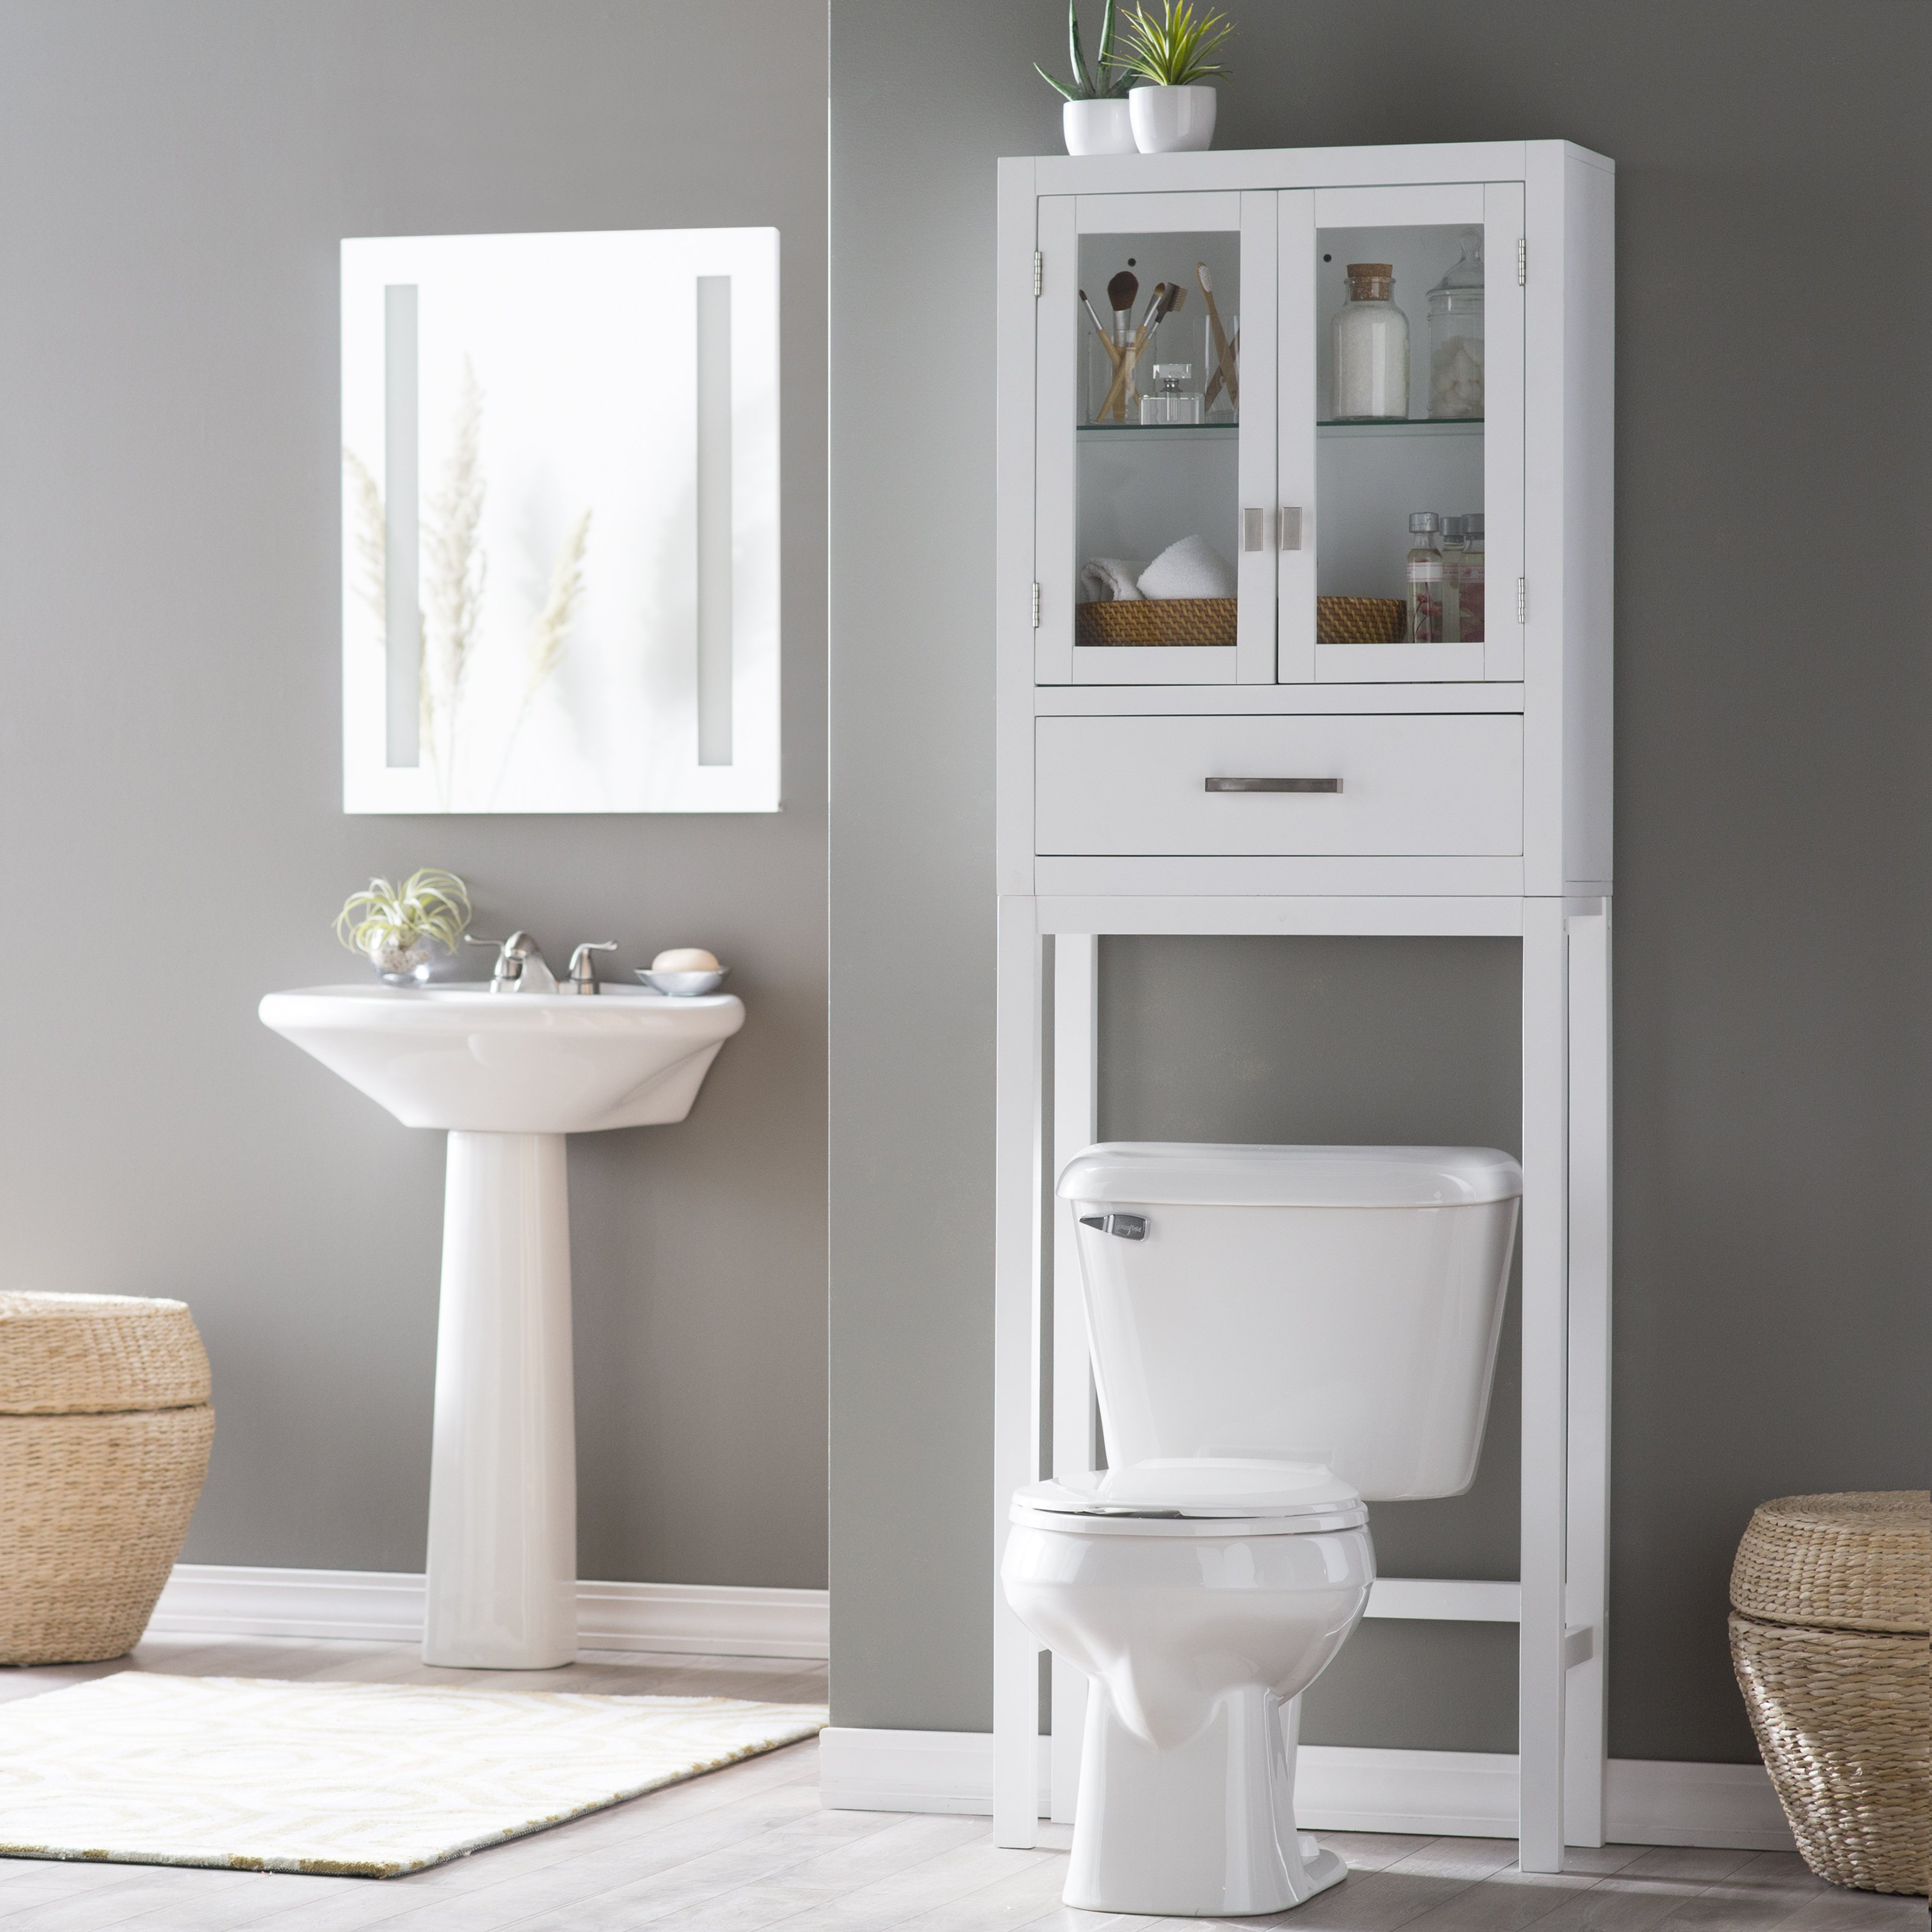 bathroom space saver belham living longbourn over-the-toilet space saver with removable legs |  hayneedle HIFRRQT